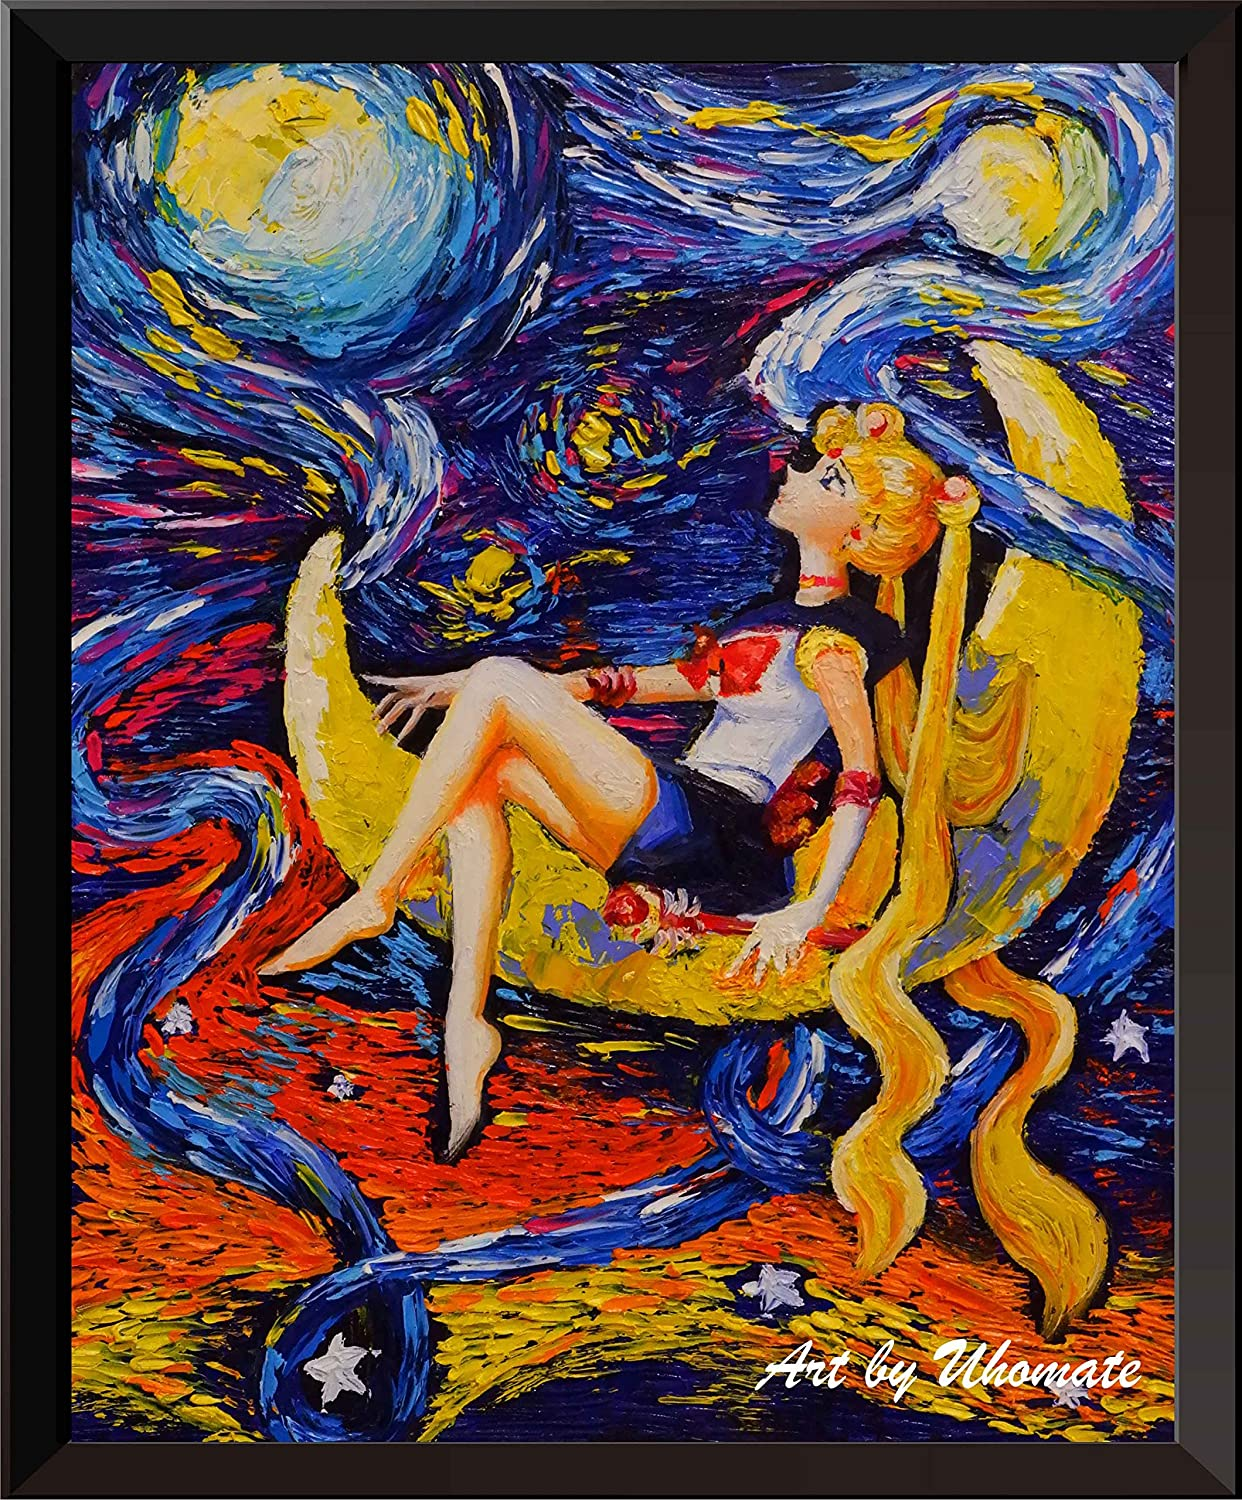 Uhomate Pretty Soldier Sailor Moon Wall Decor Vincent Van Gogh Starry Night Posters Home Canvas Wall Art Anniversary Gifts Baby Gift Nursery Decor Living Room Wall Decor A052 (18X24)